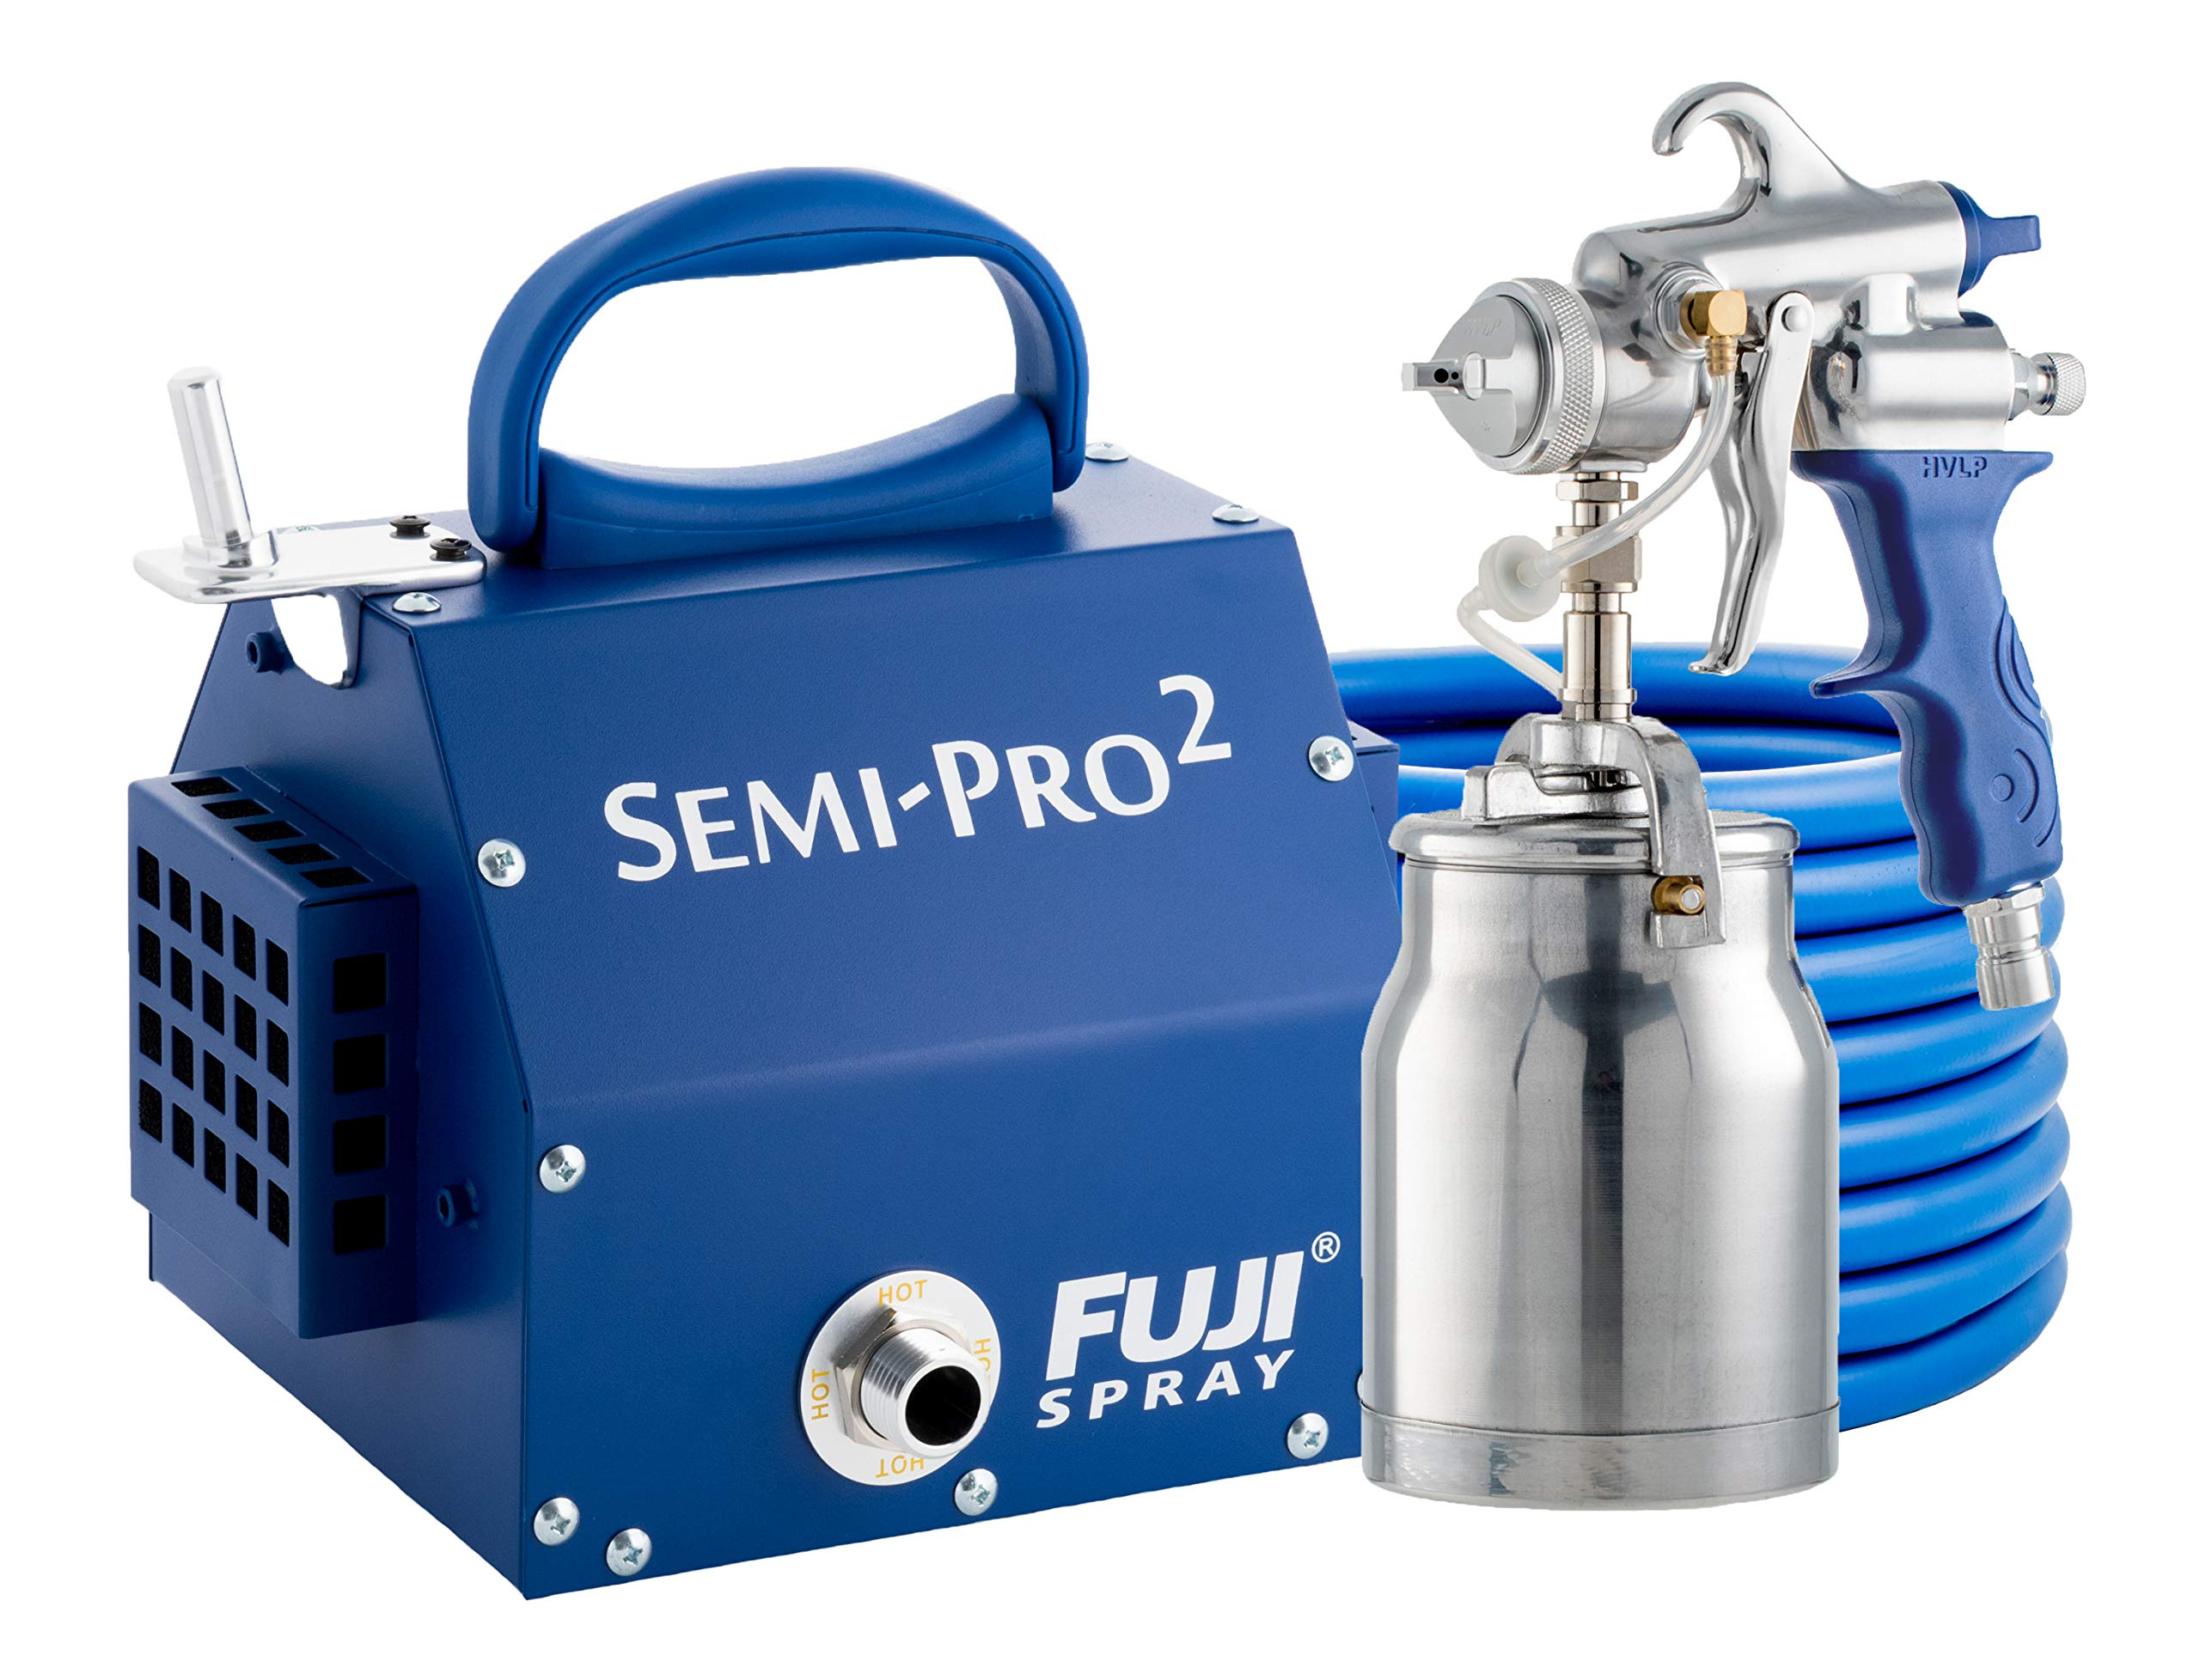 Fuji 2202 Semi-PRO 2 HVLP Spray System, Blue by Fuji Spray